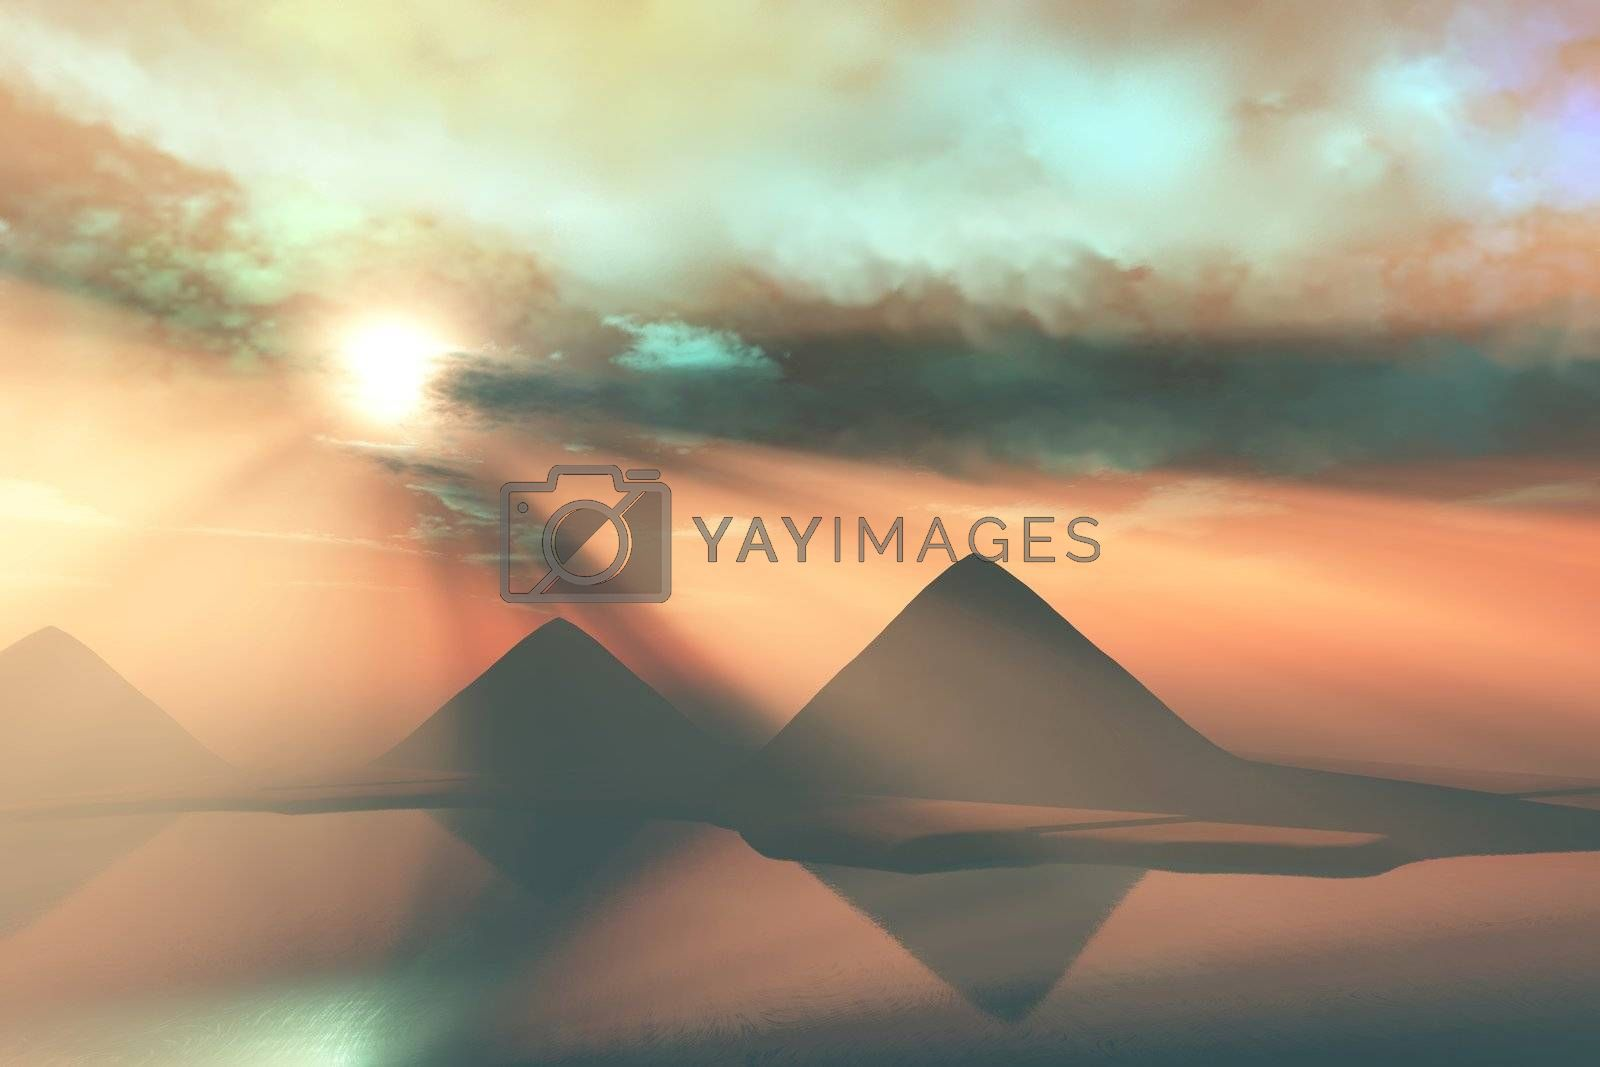 Three pyramids along the Nile River in Egypt.